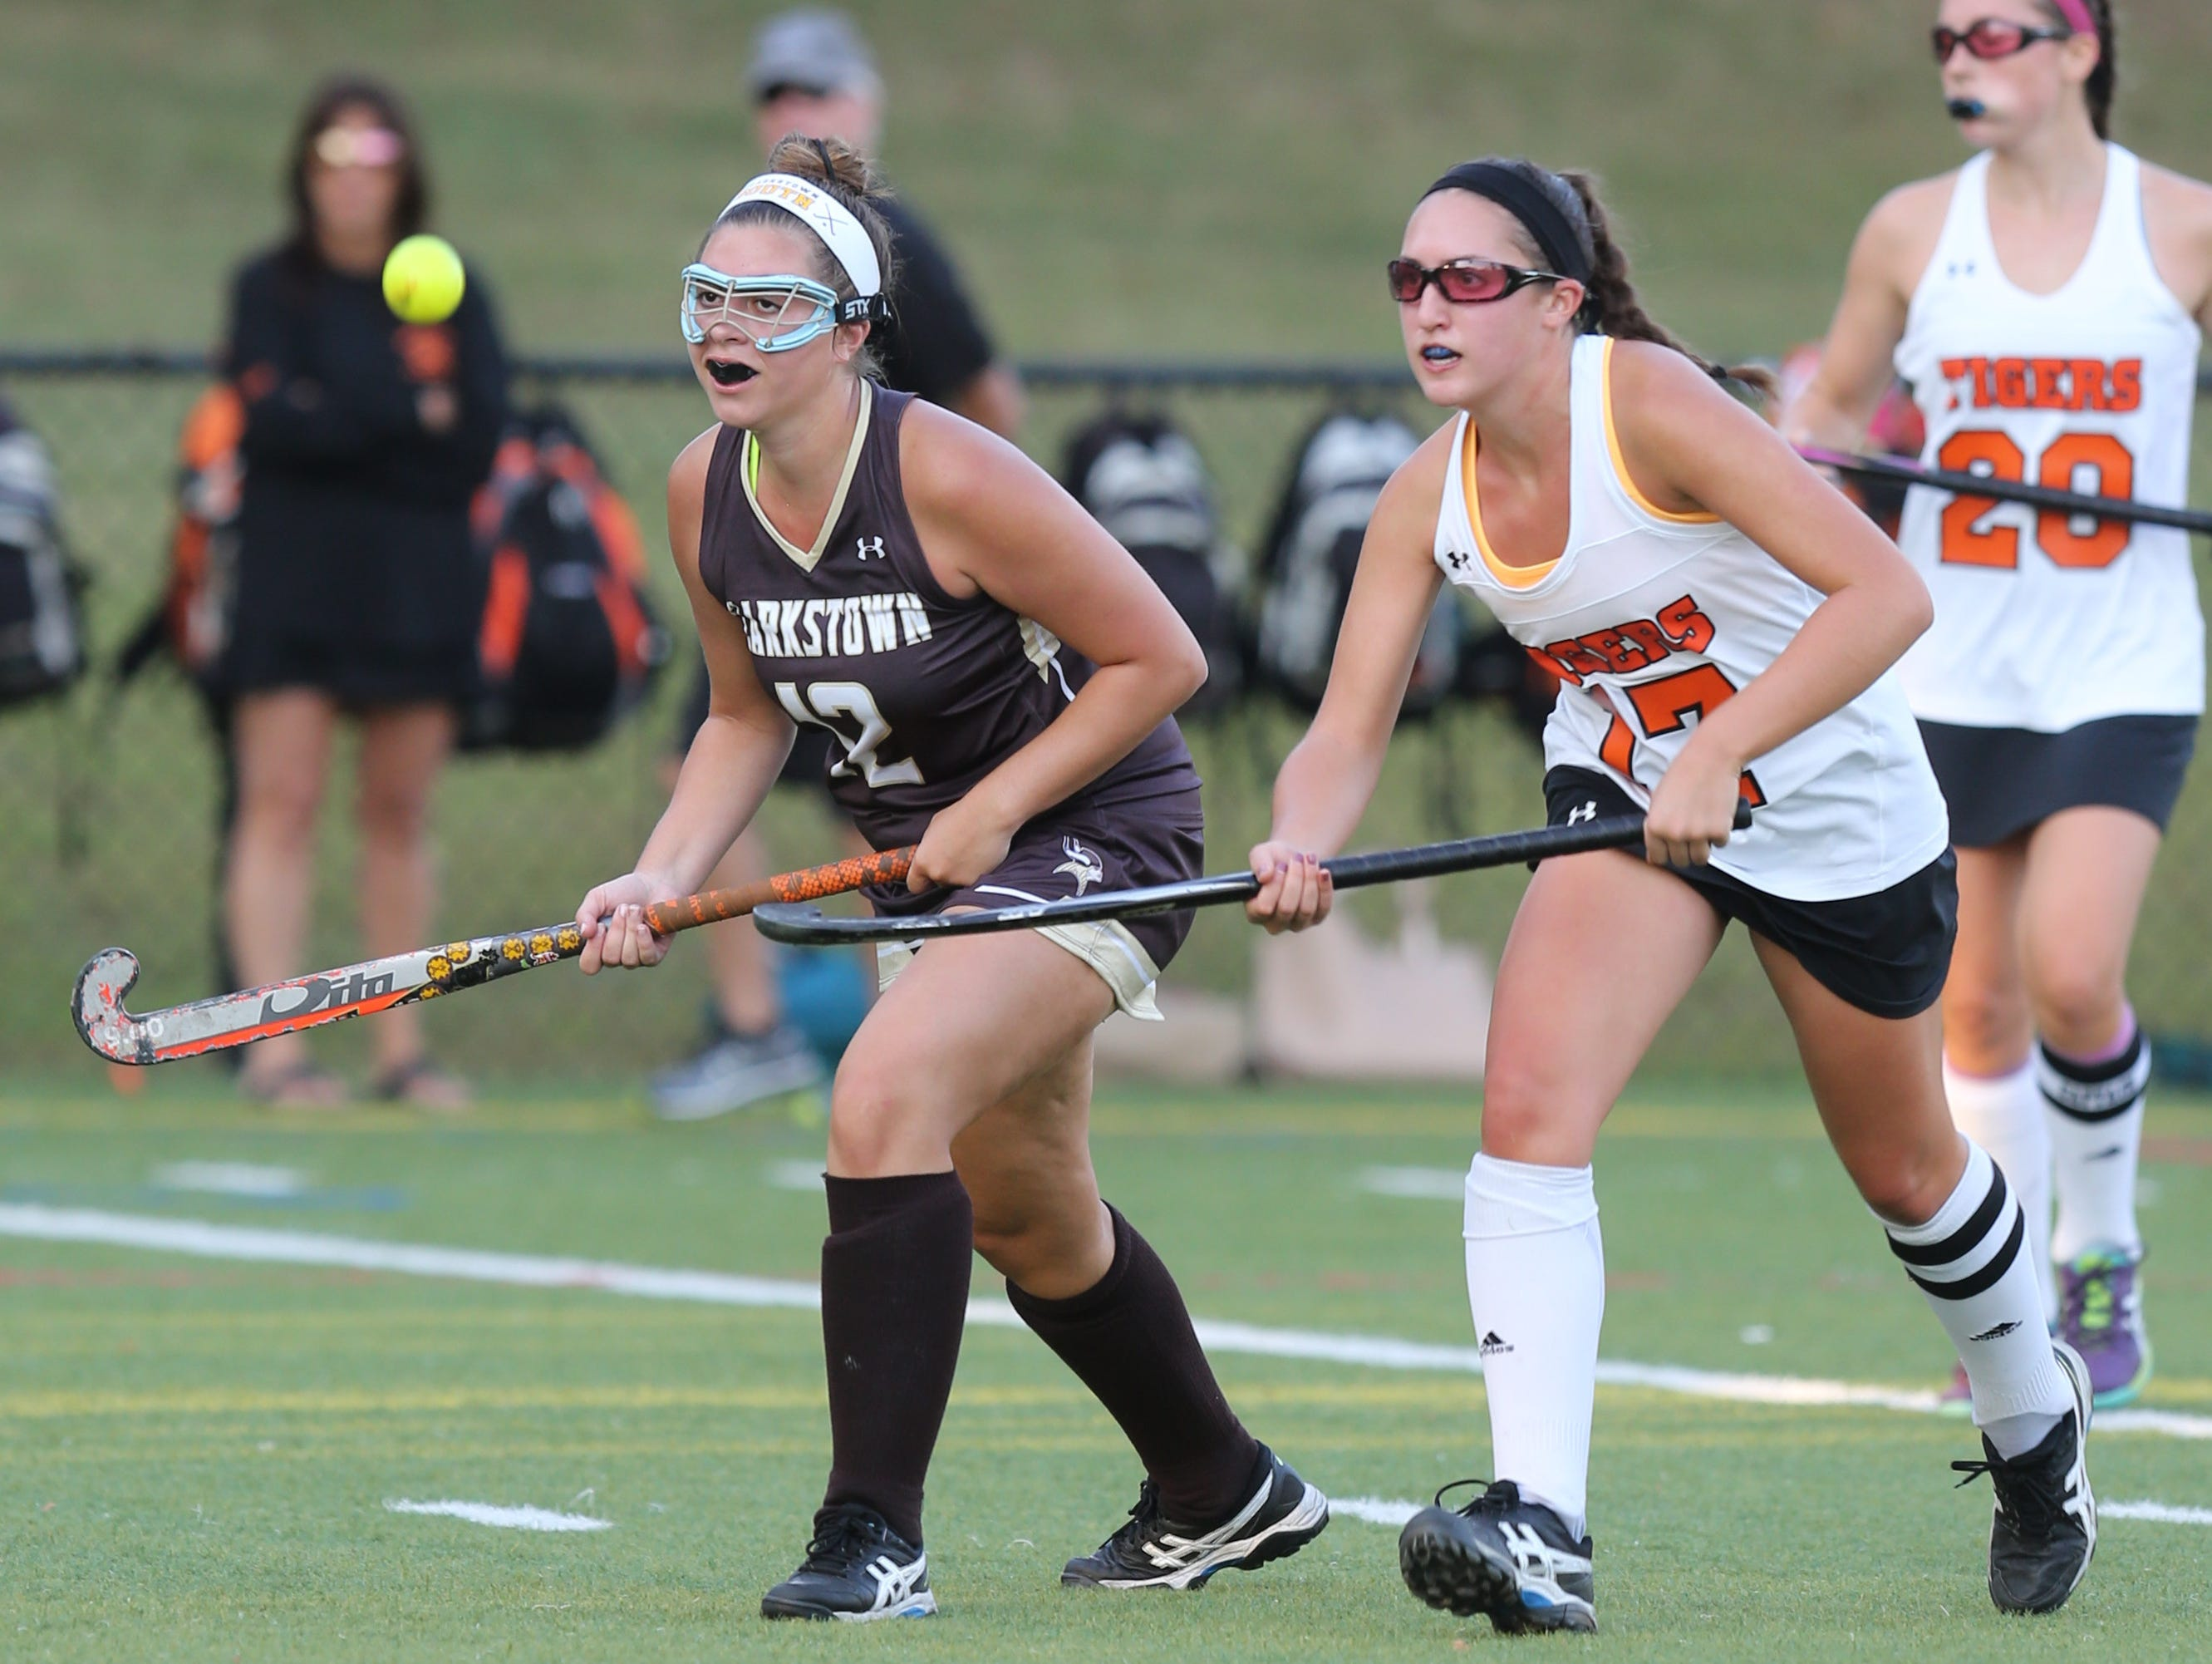 Clarkstown South's Danielle Noia, left, and Mamaroneck's Paige Danehy battle for control of the ball during their game at Mamaroneck High School on Tuesday.